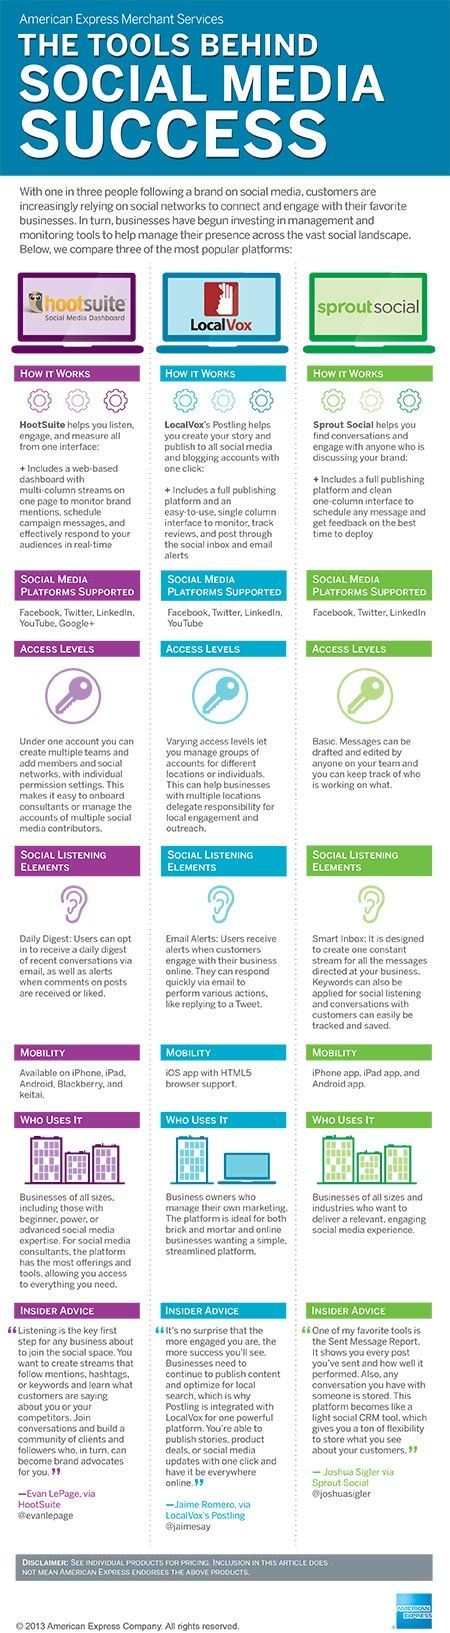 Comparison of hoot suite, LocalVox, and SproutSocial (#SocialMedia tools) #Infographic